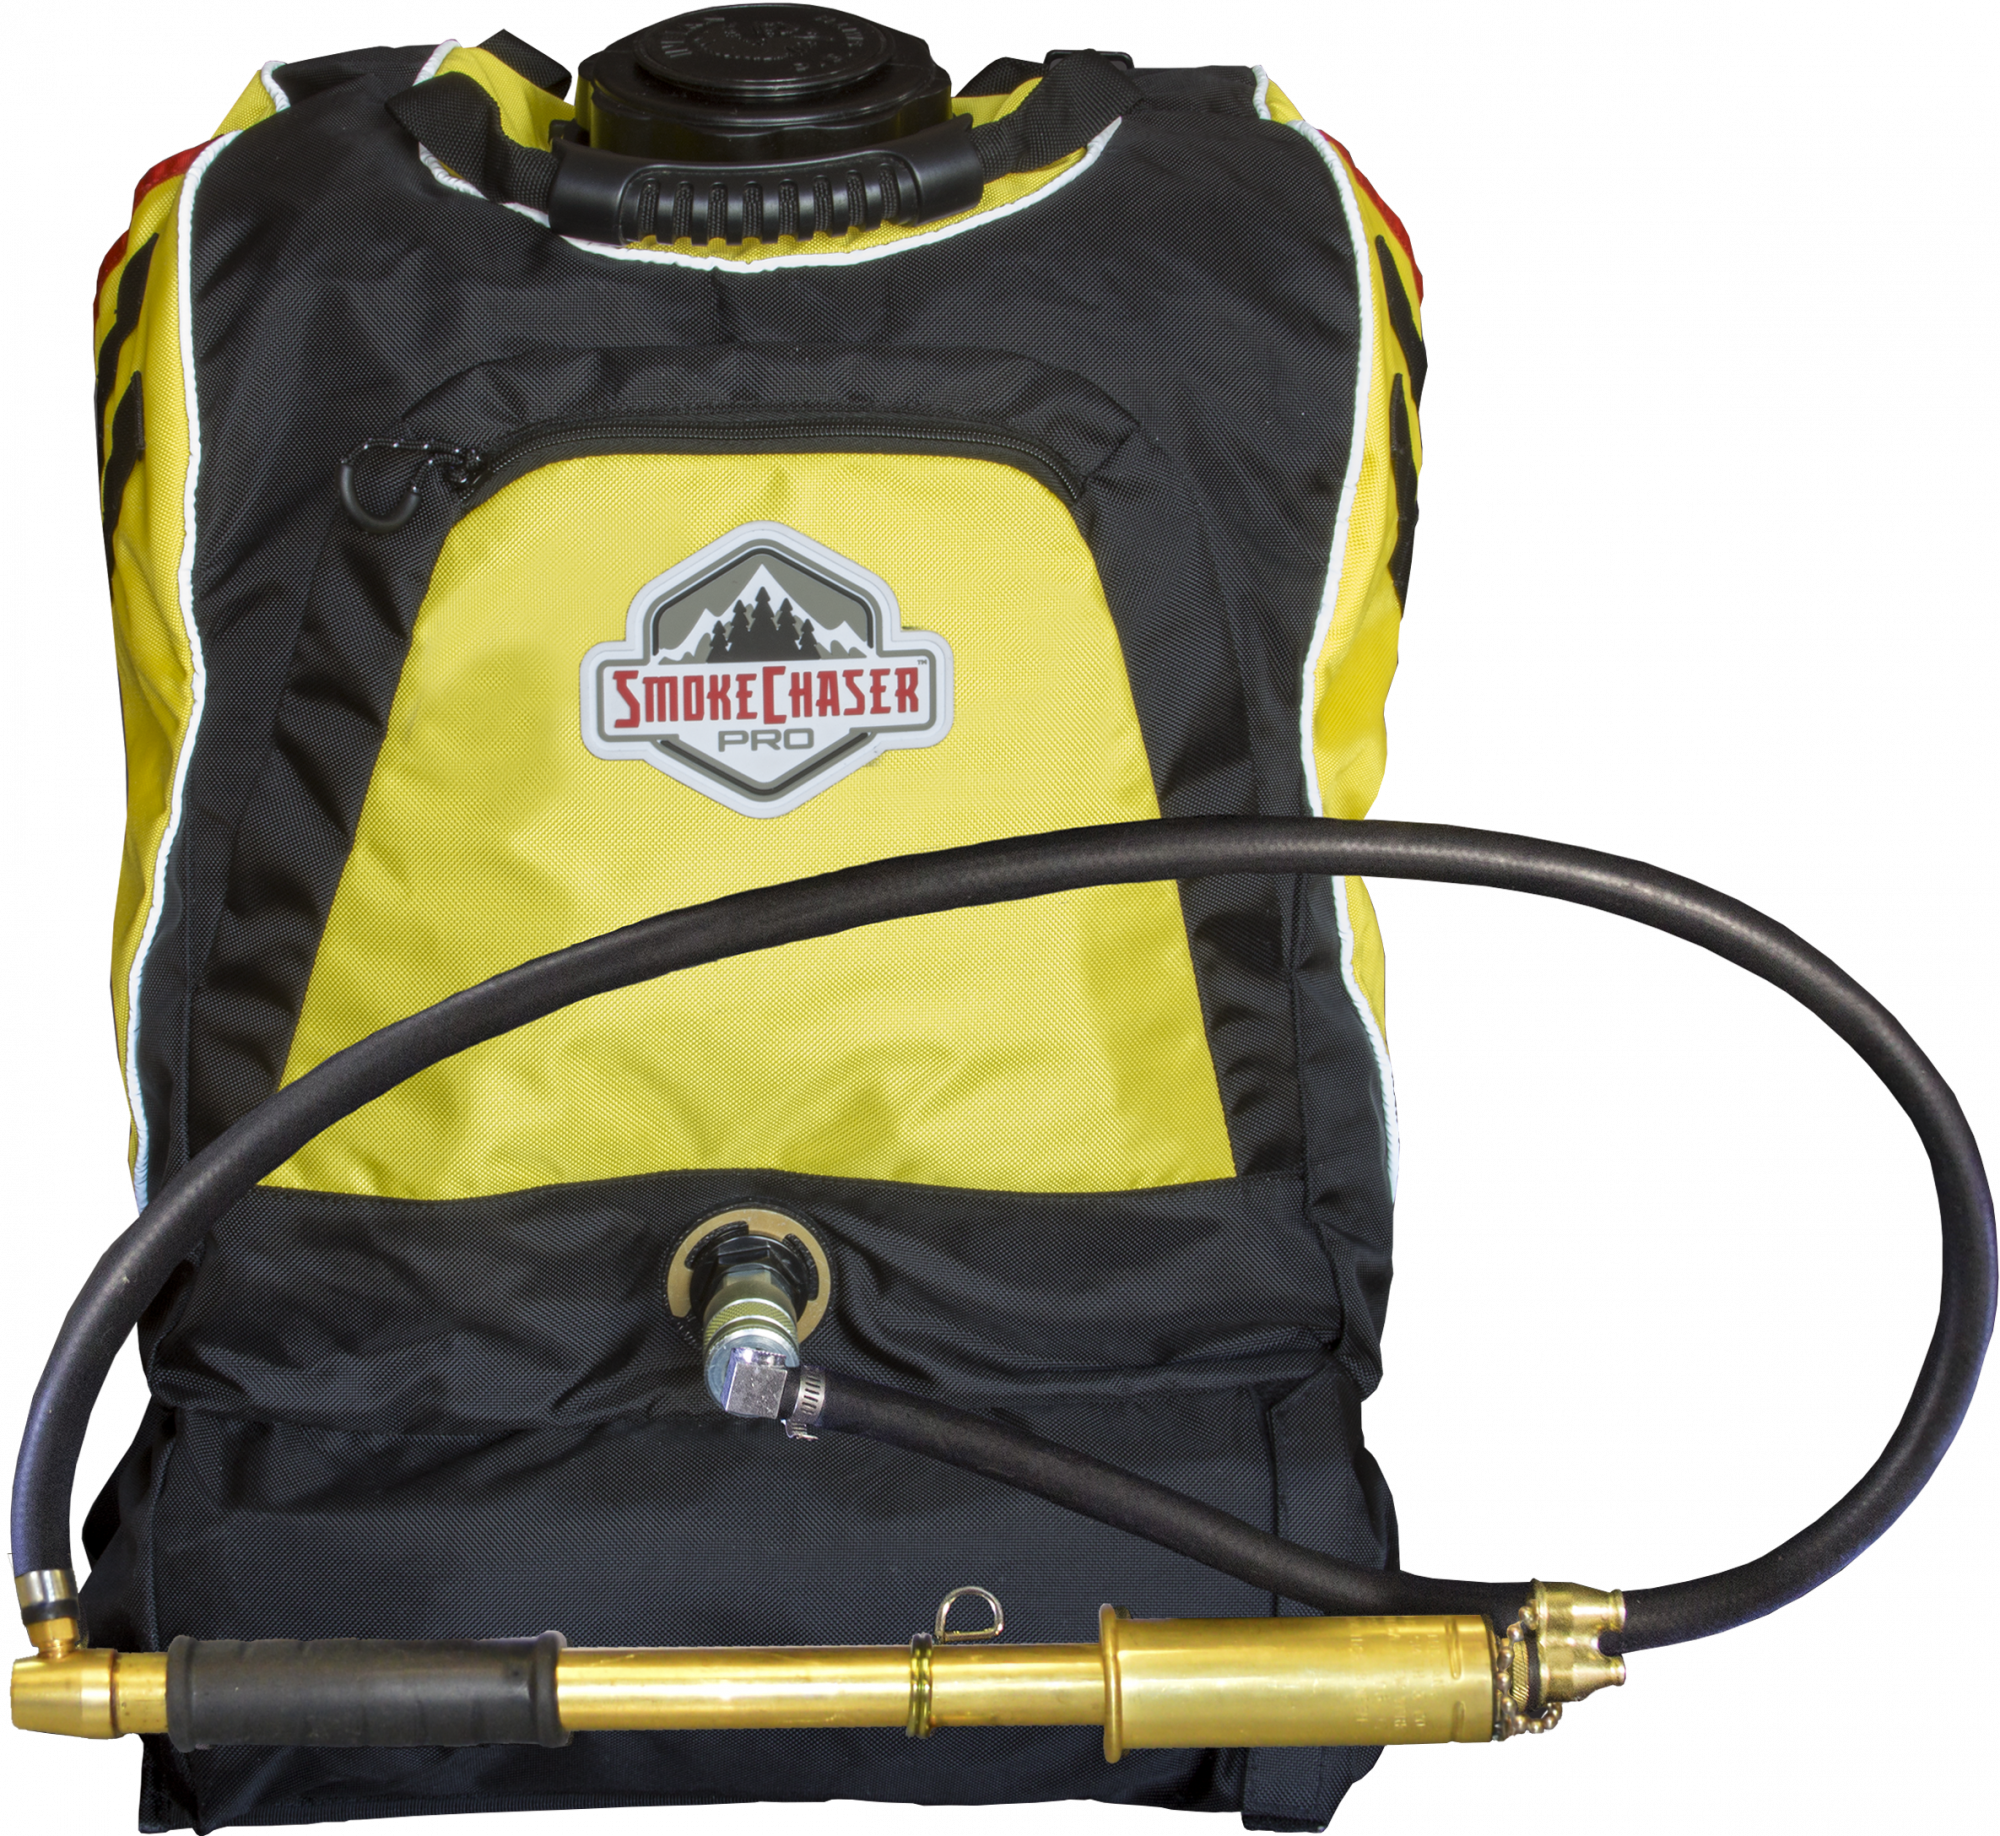 Indian SmokeChaser™ Pro 5-Gallon with FP100 Fire Pump, Model 190514